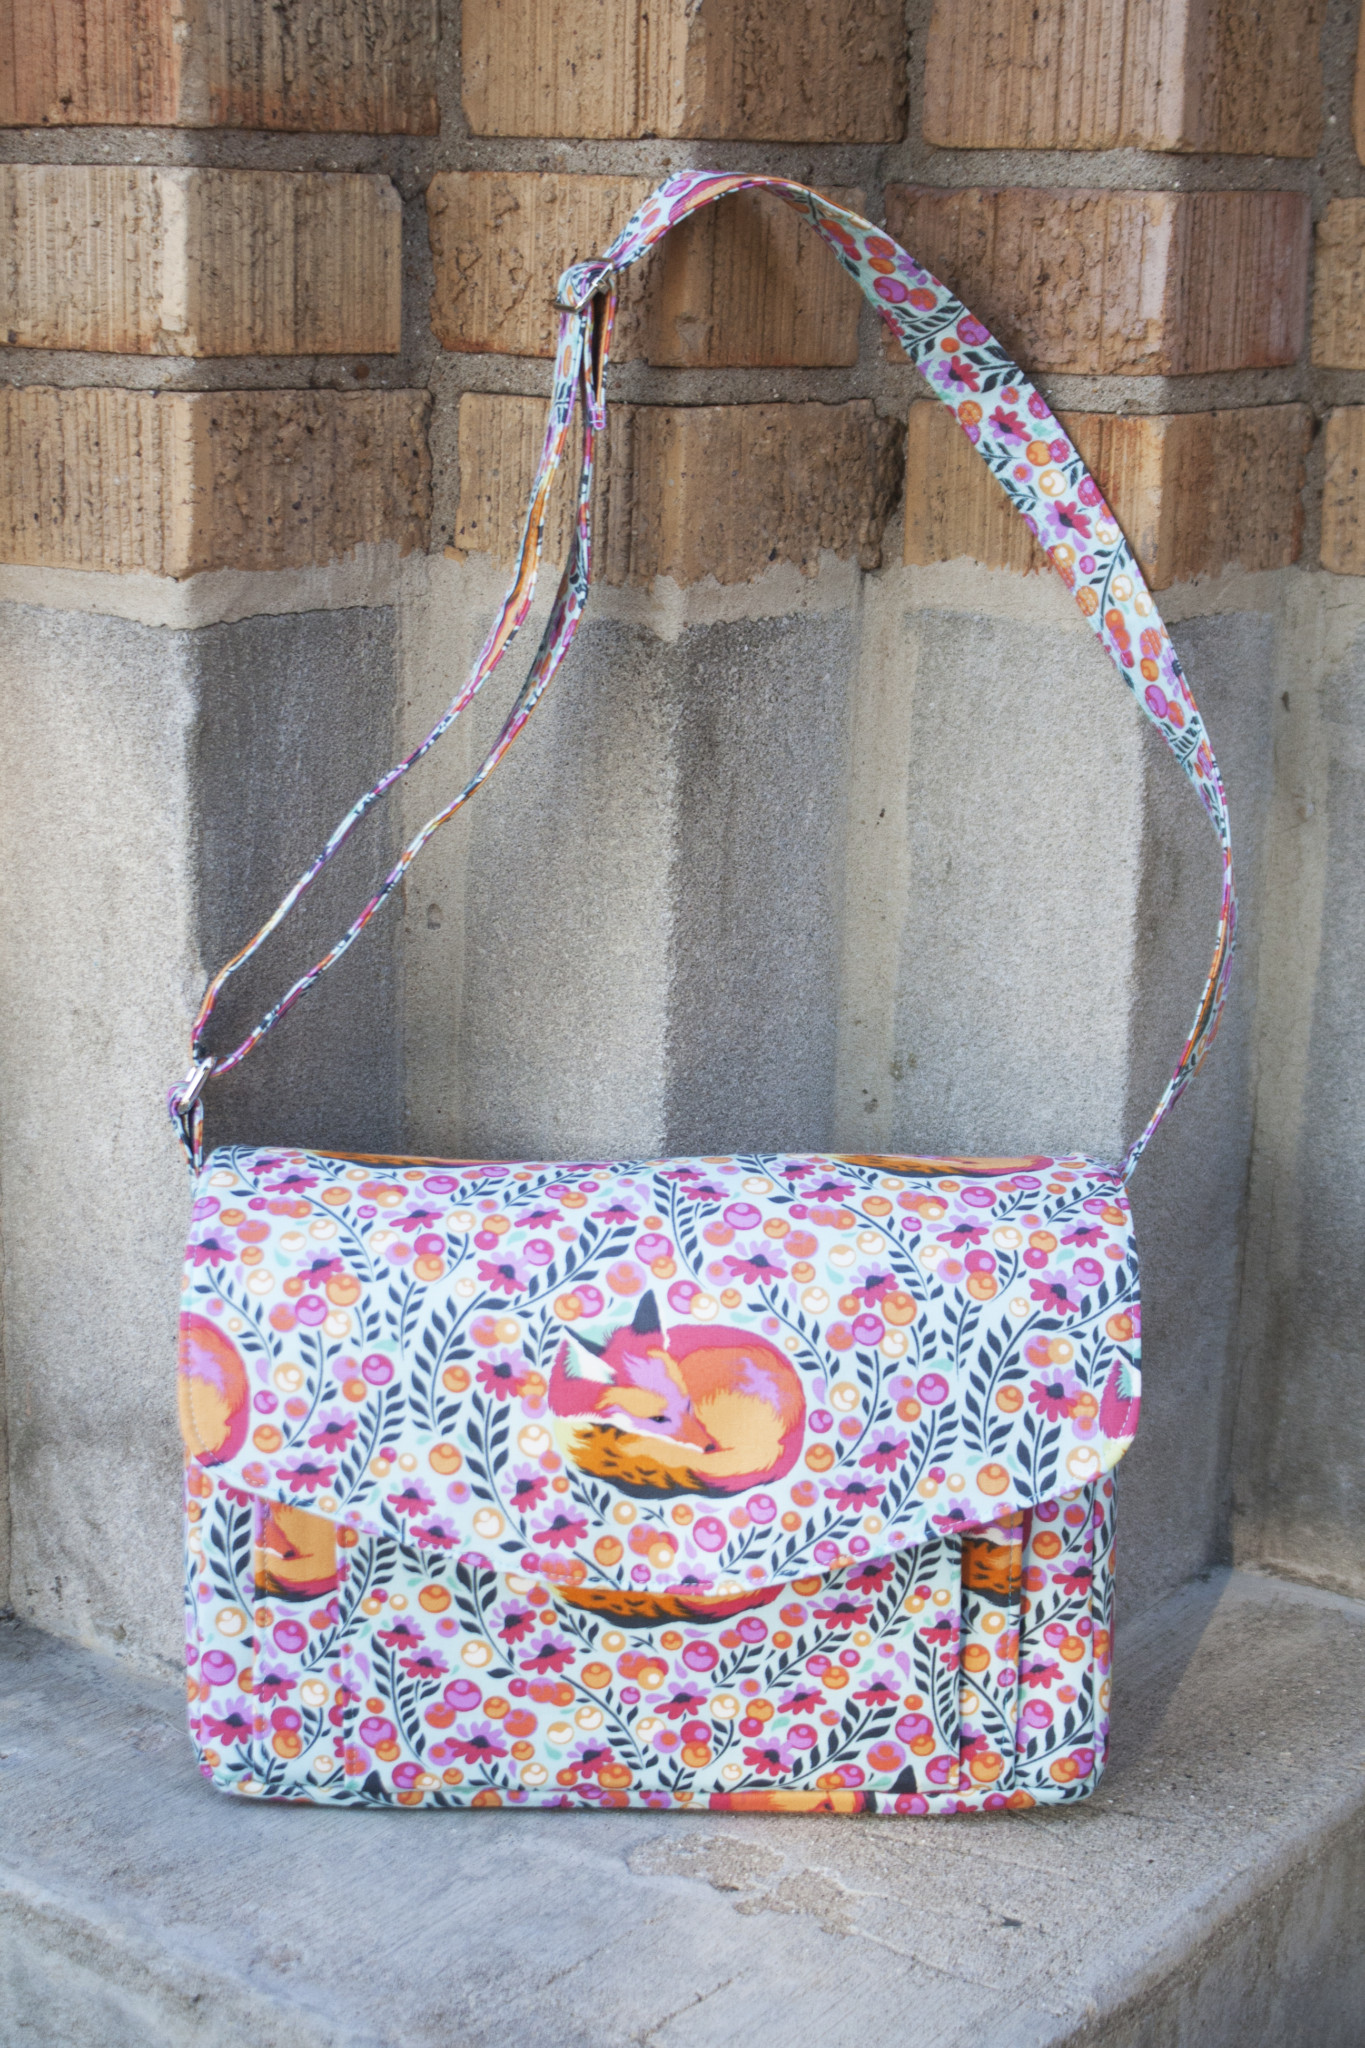 Appaloosa bag pattern from Sew Sweetness